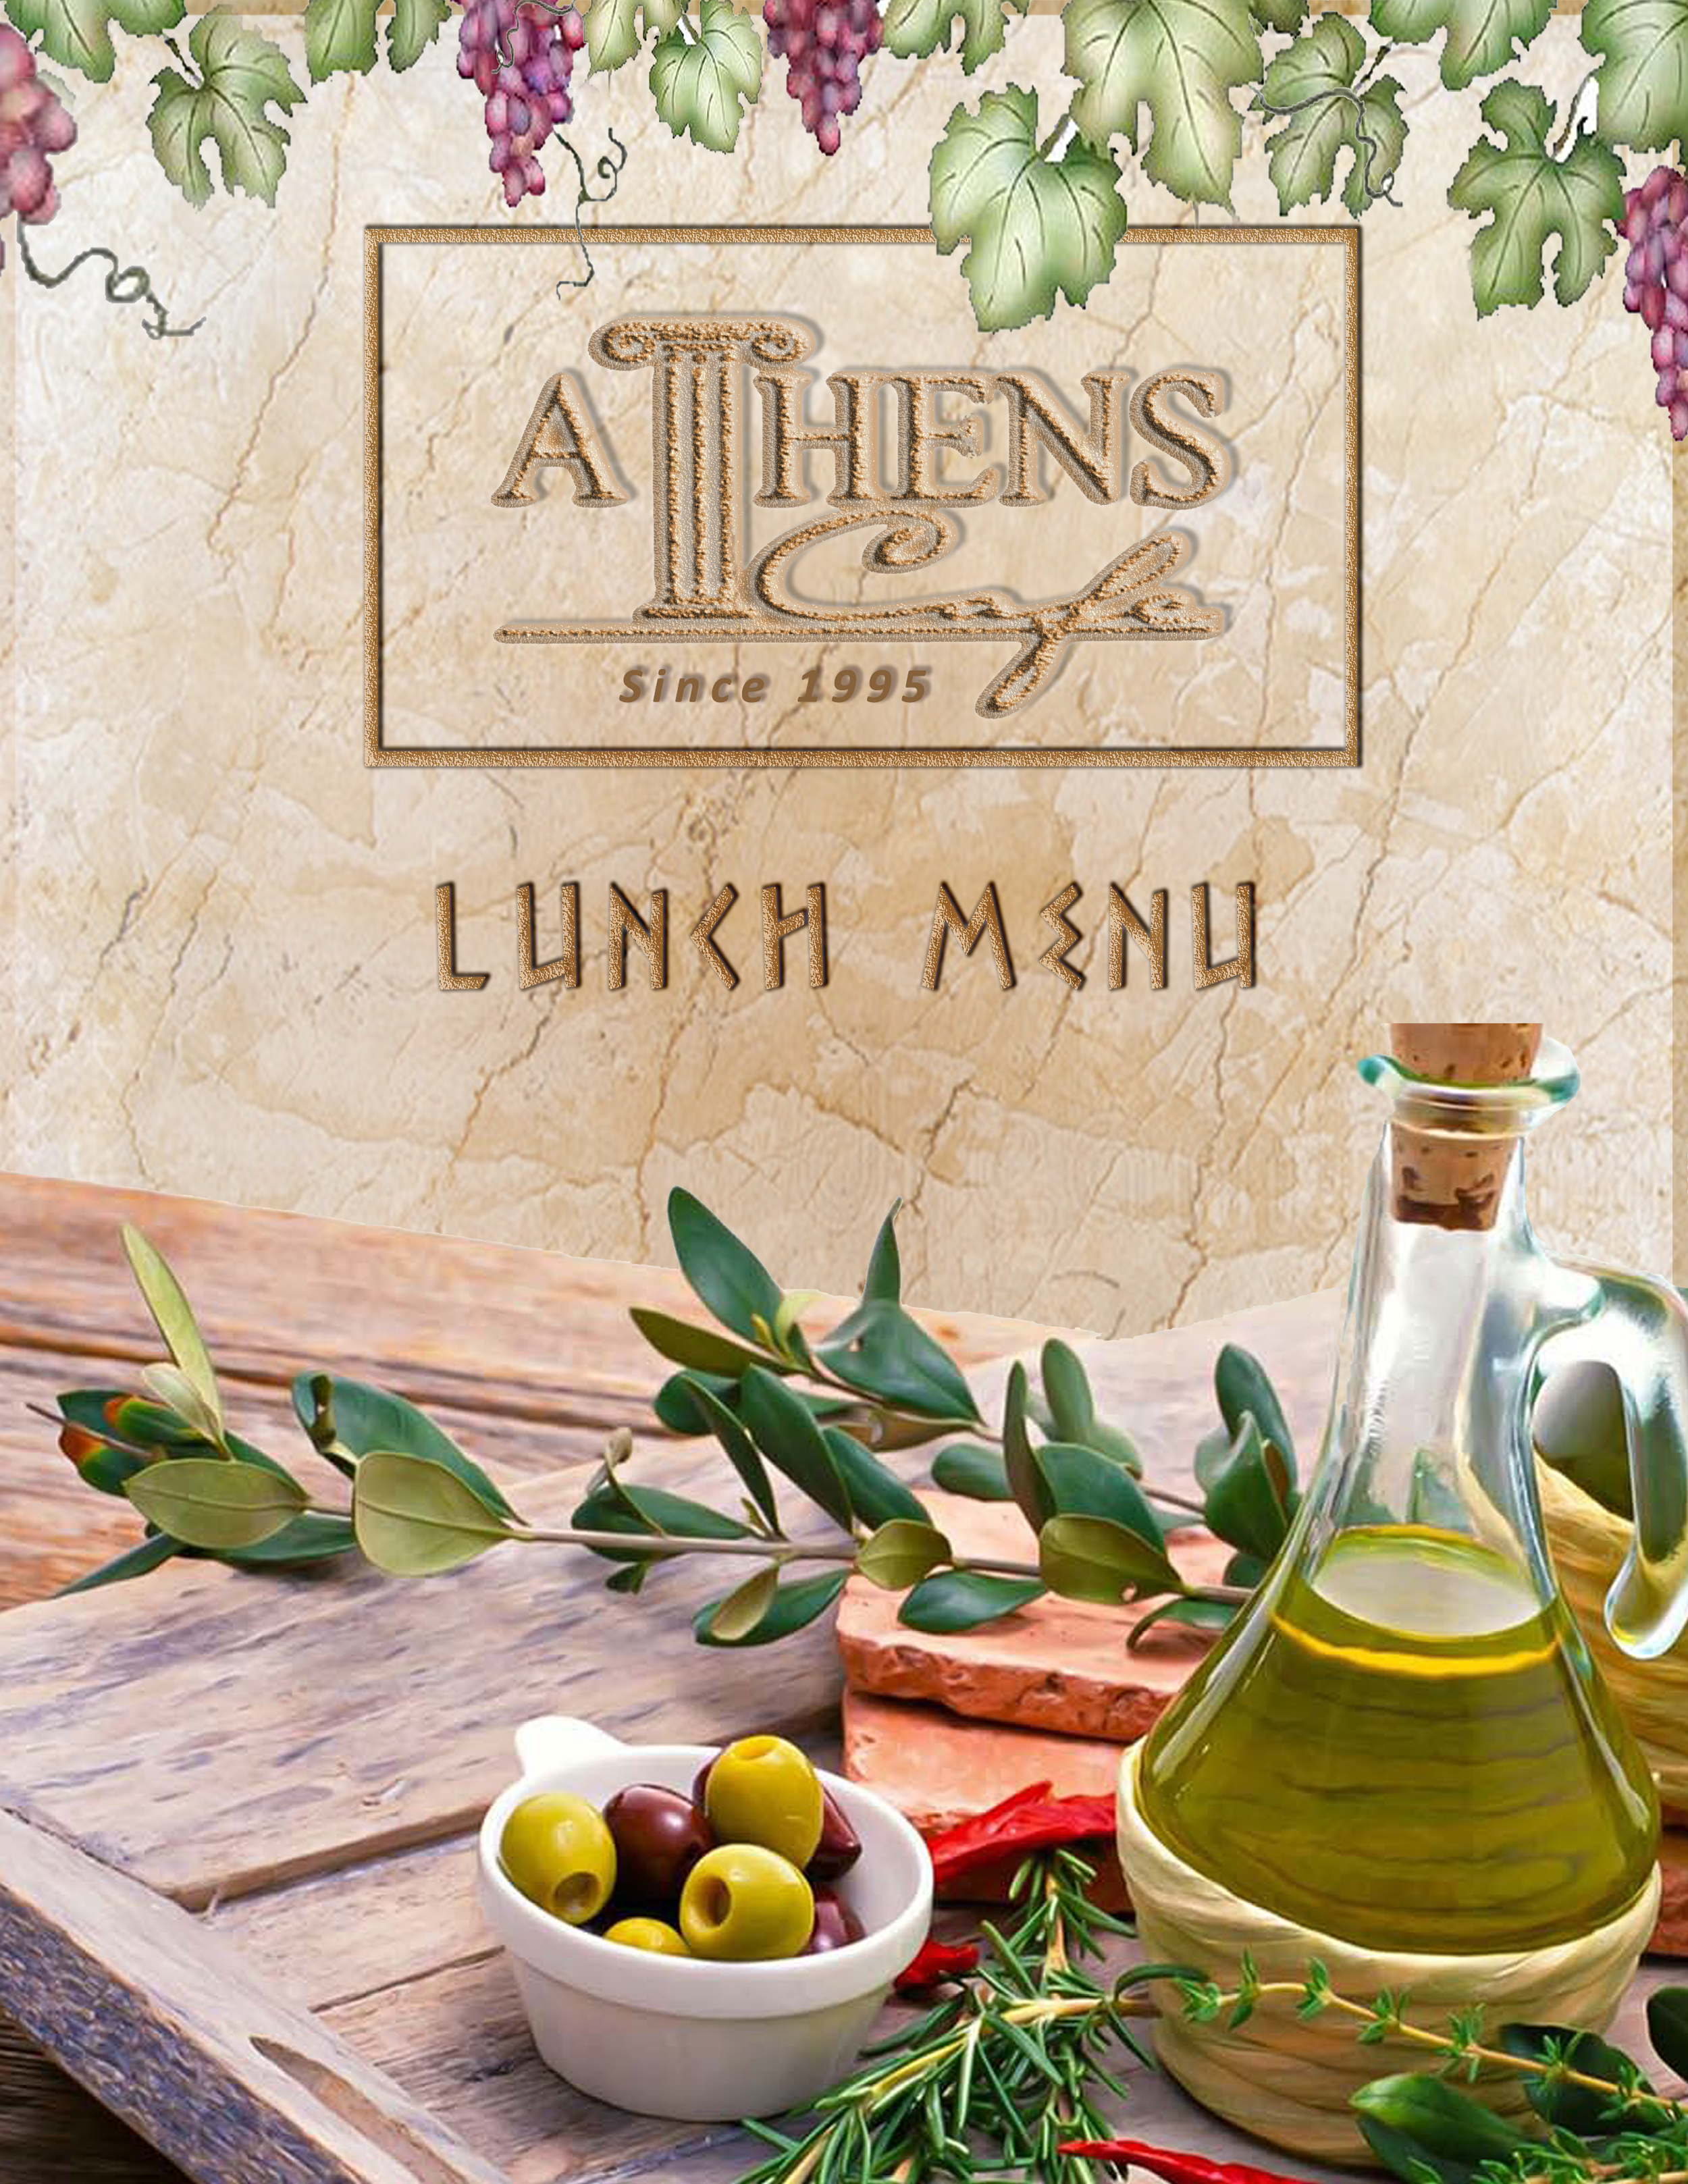 LUNCH 06232019.png